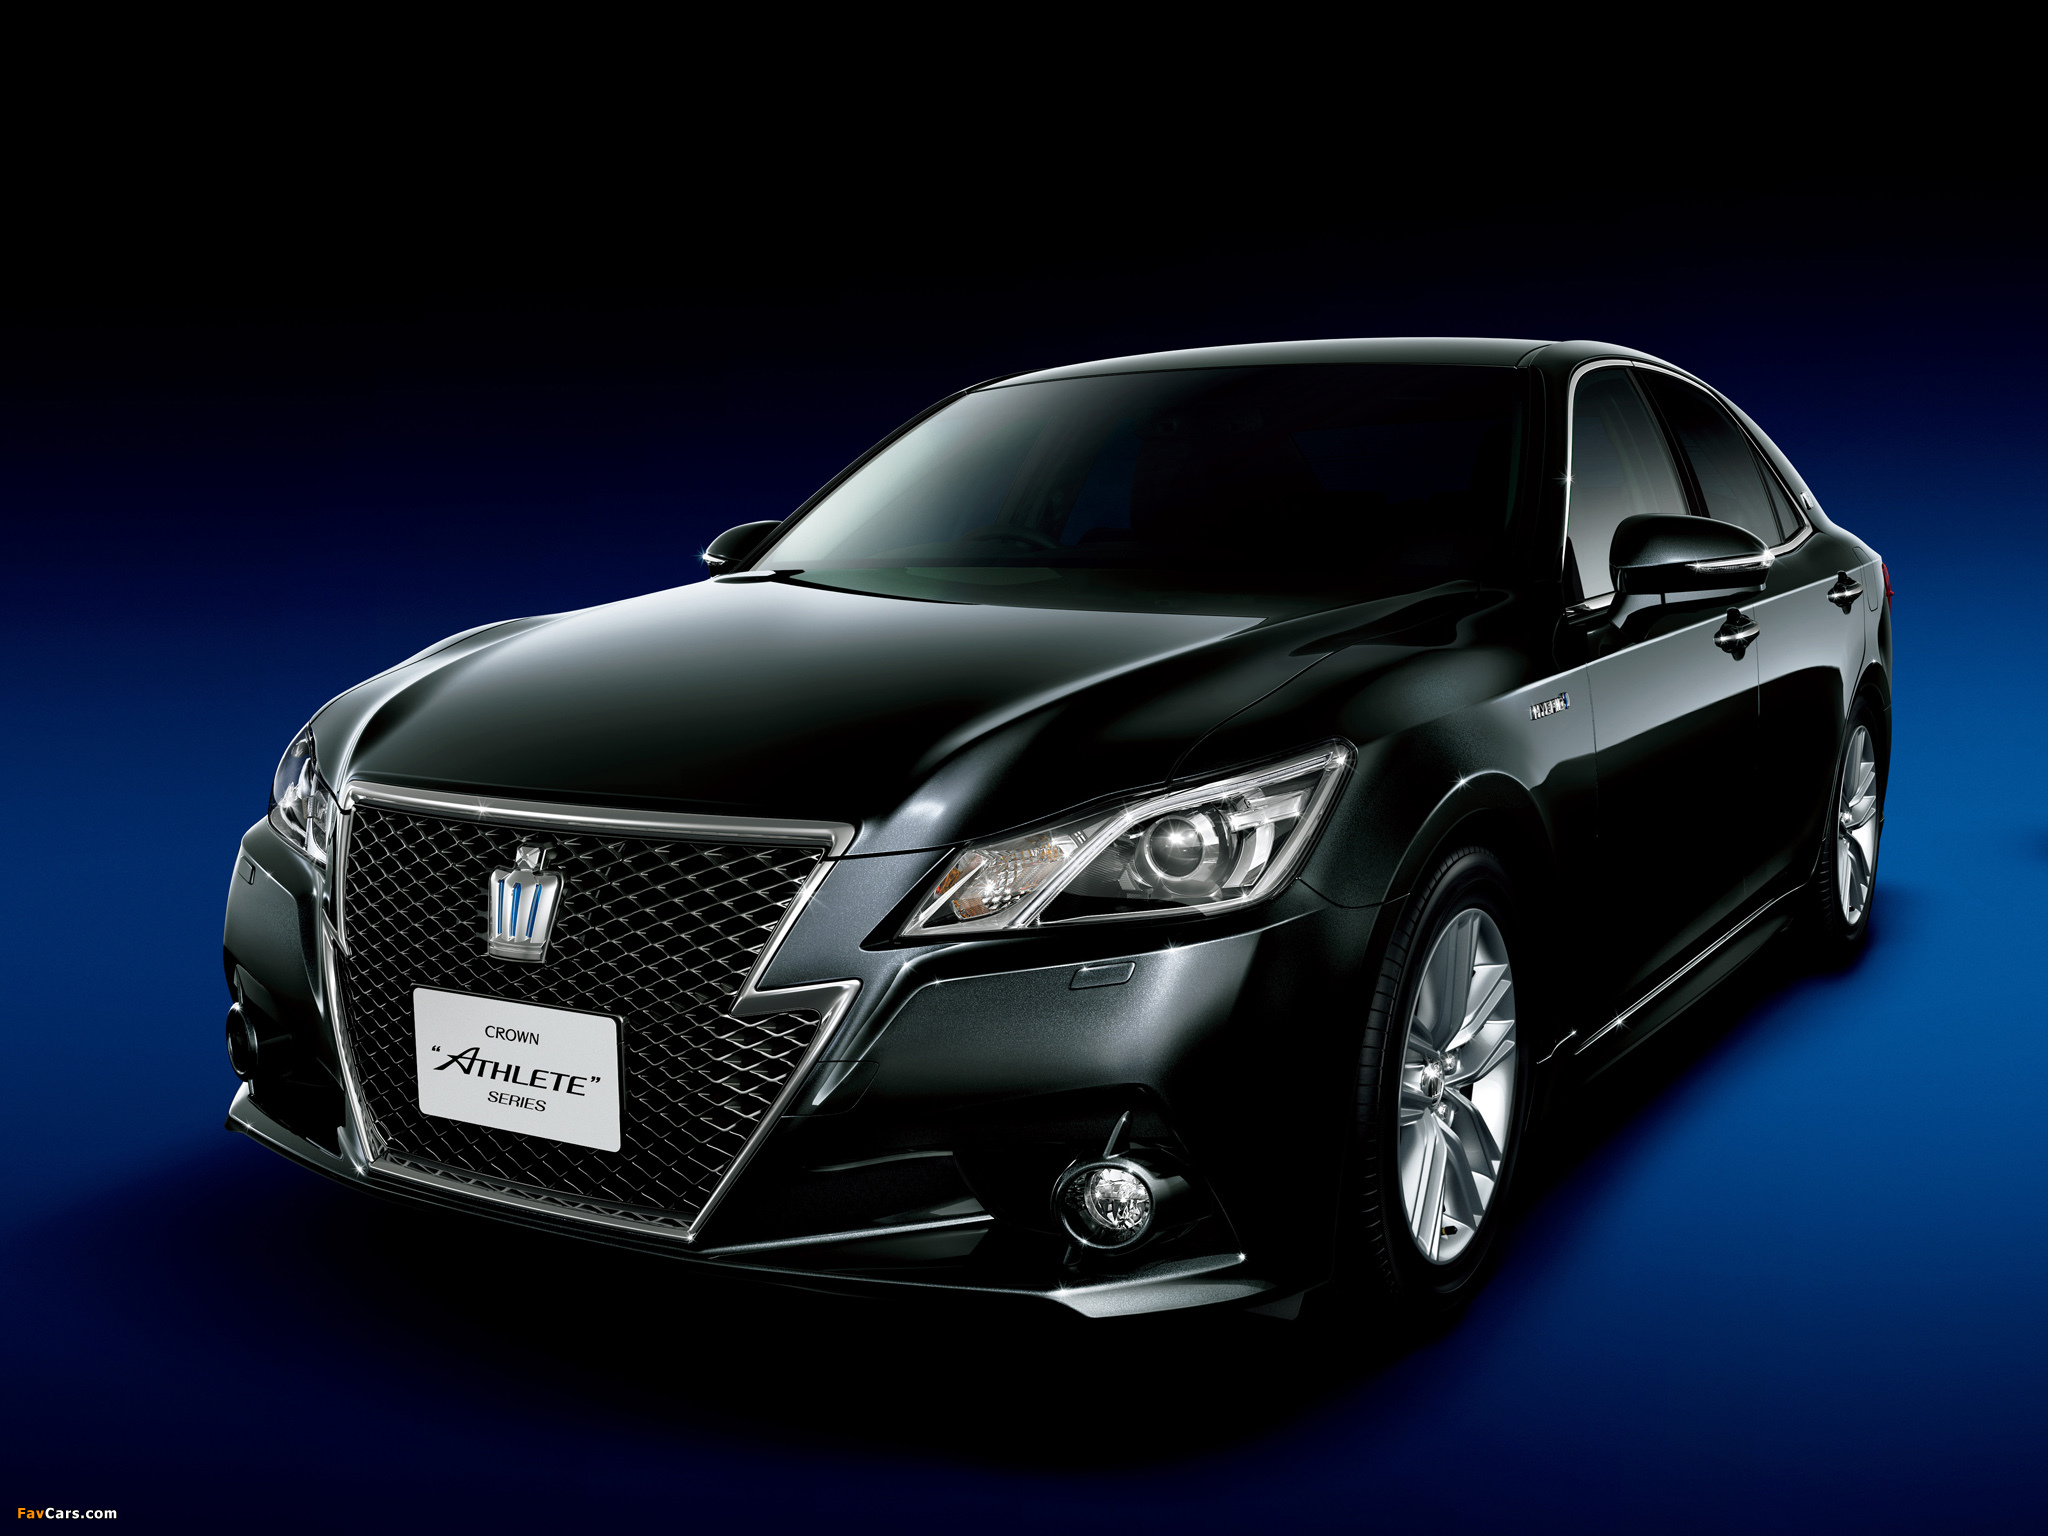 2015 Toyota Crown Athlete Service Manual - natson.co.uk